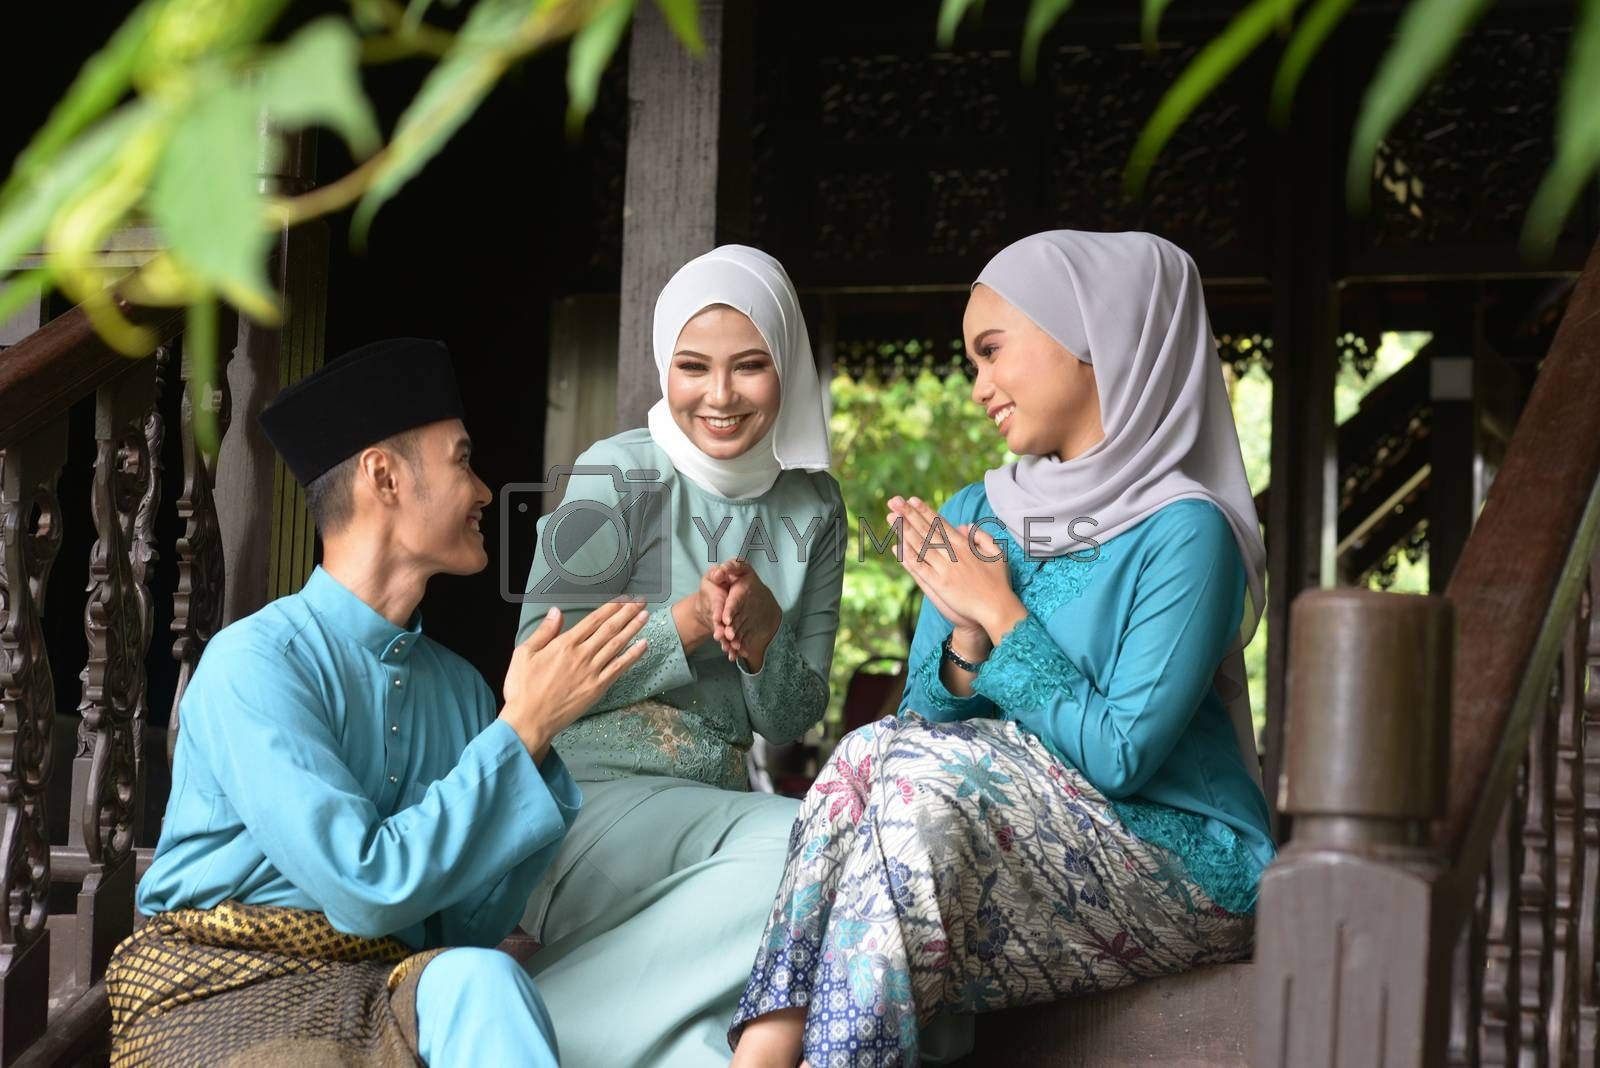 Asian Malay Muslim greetings during Hari Raya Aidilfitri. Malaysian people living lifestyle.